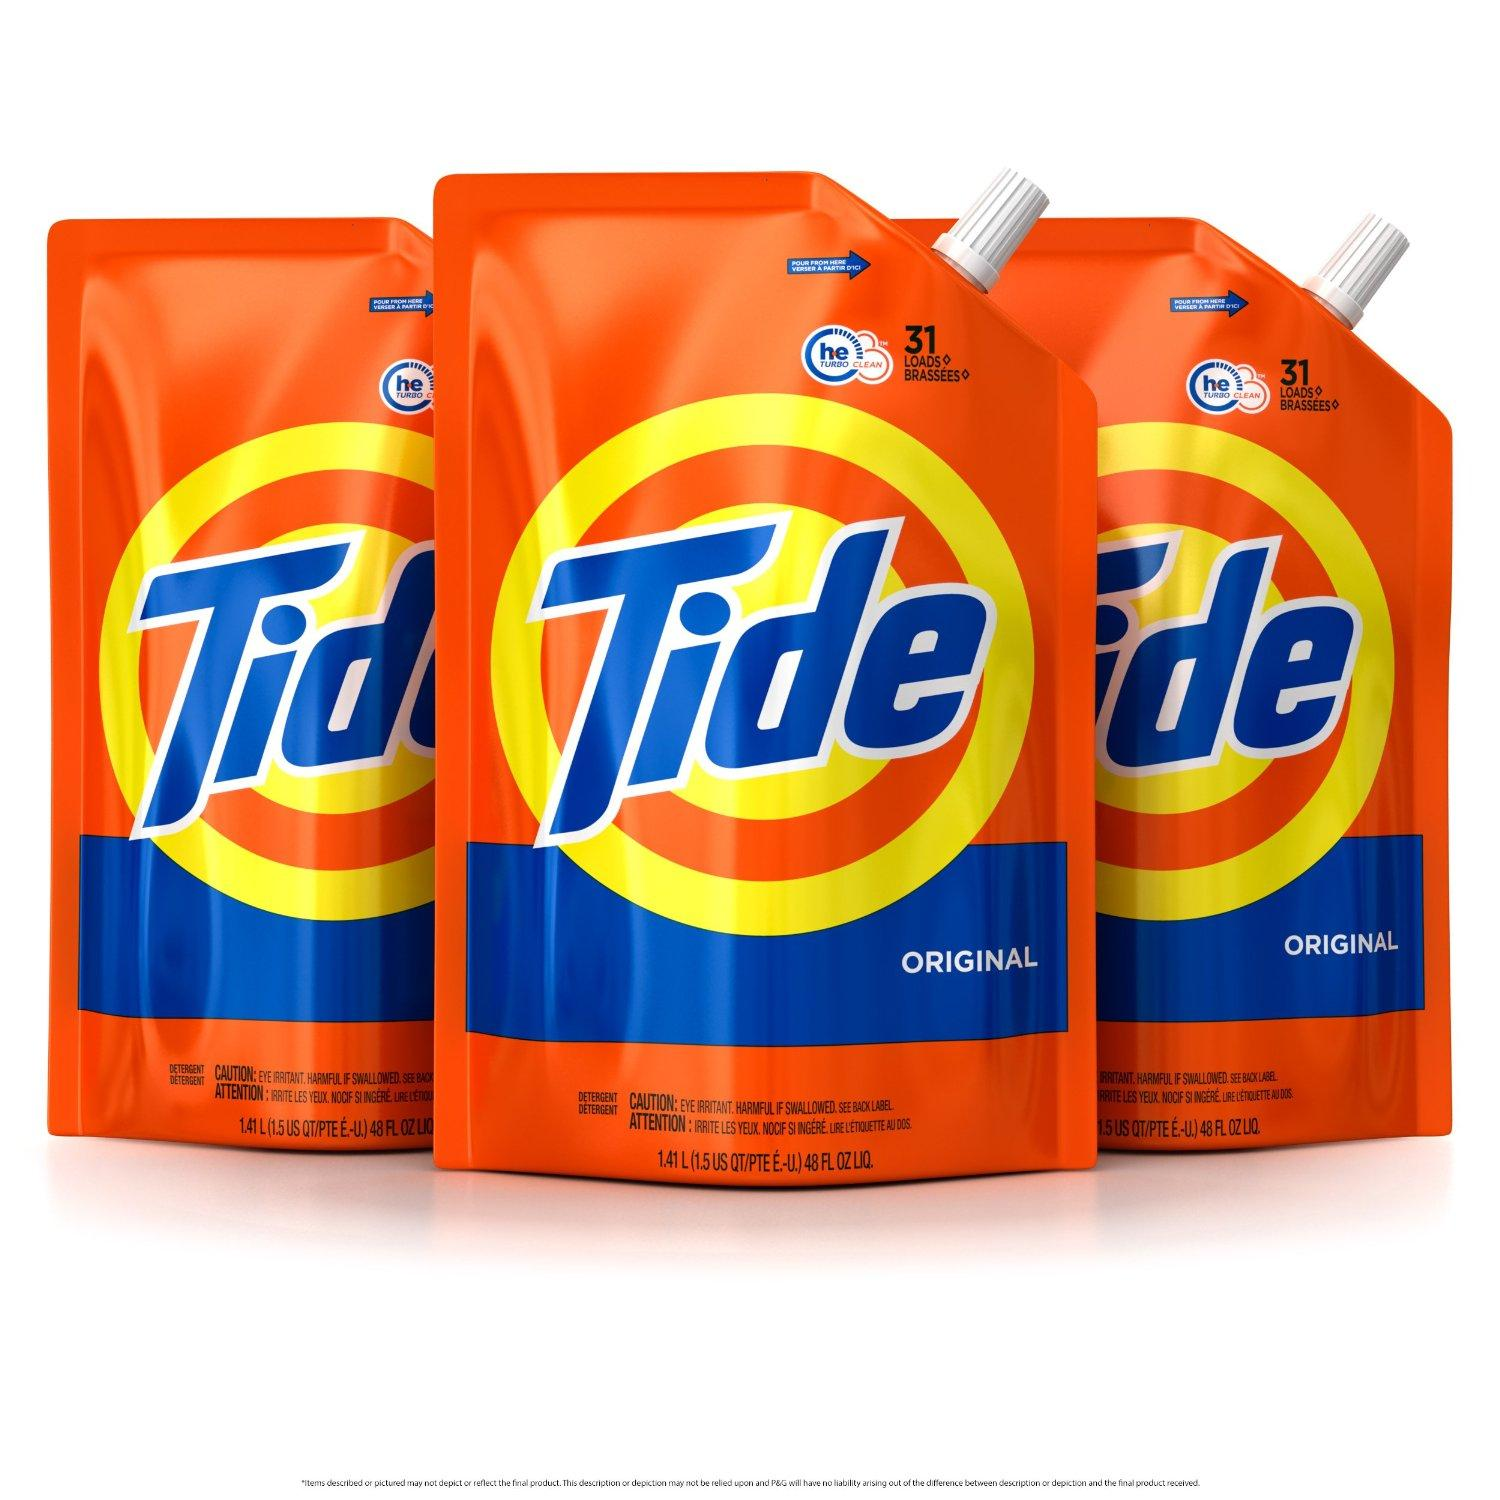 Tide Smart Pouch Original Scent HE Turbo Clean Liquid Laundry Detergent, Pack of three 48 oz